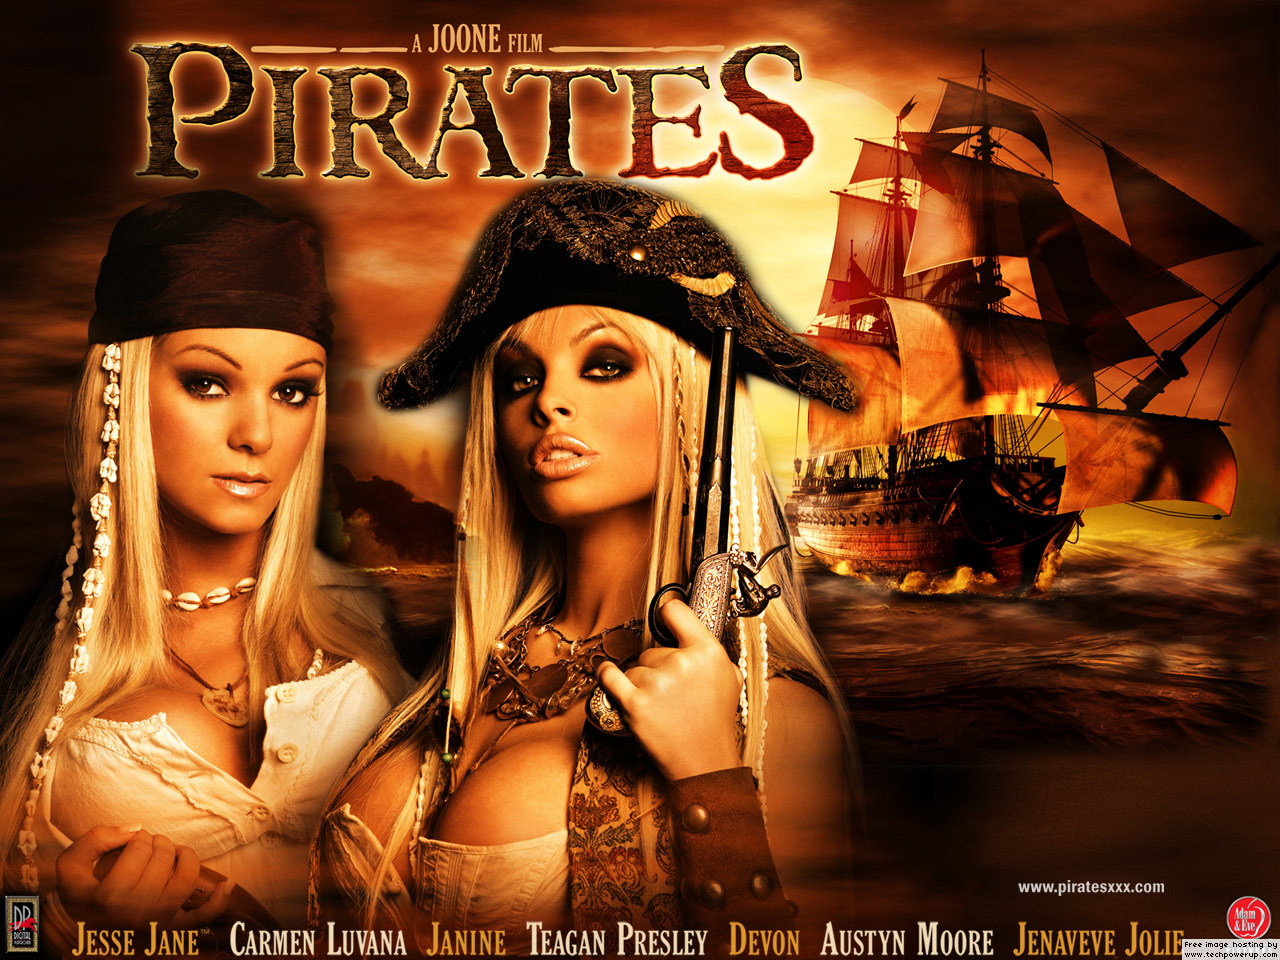 Pirates porn movie free download xxx photos